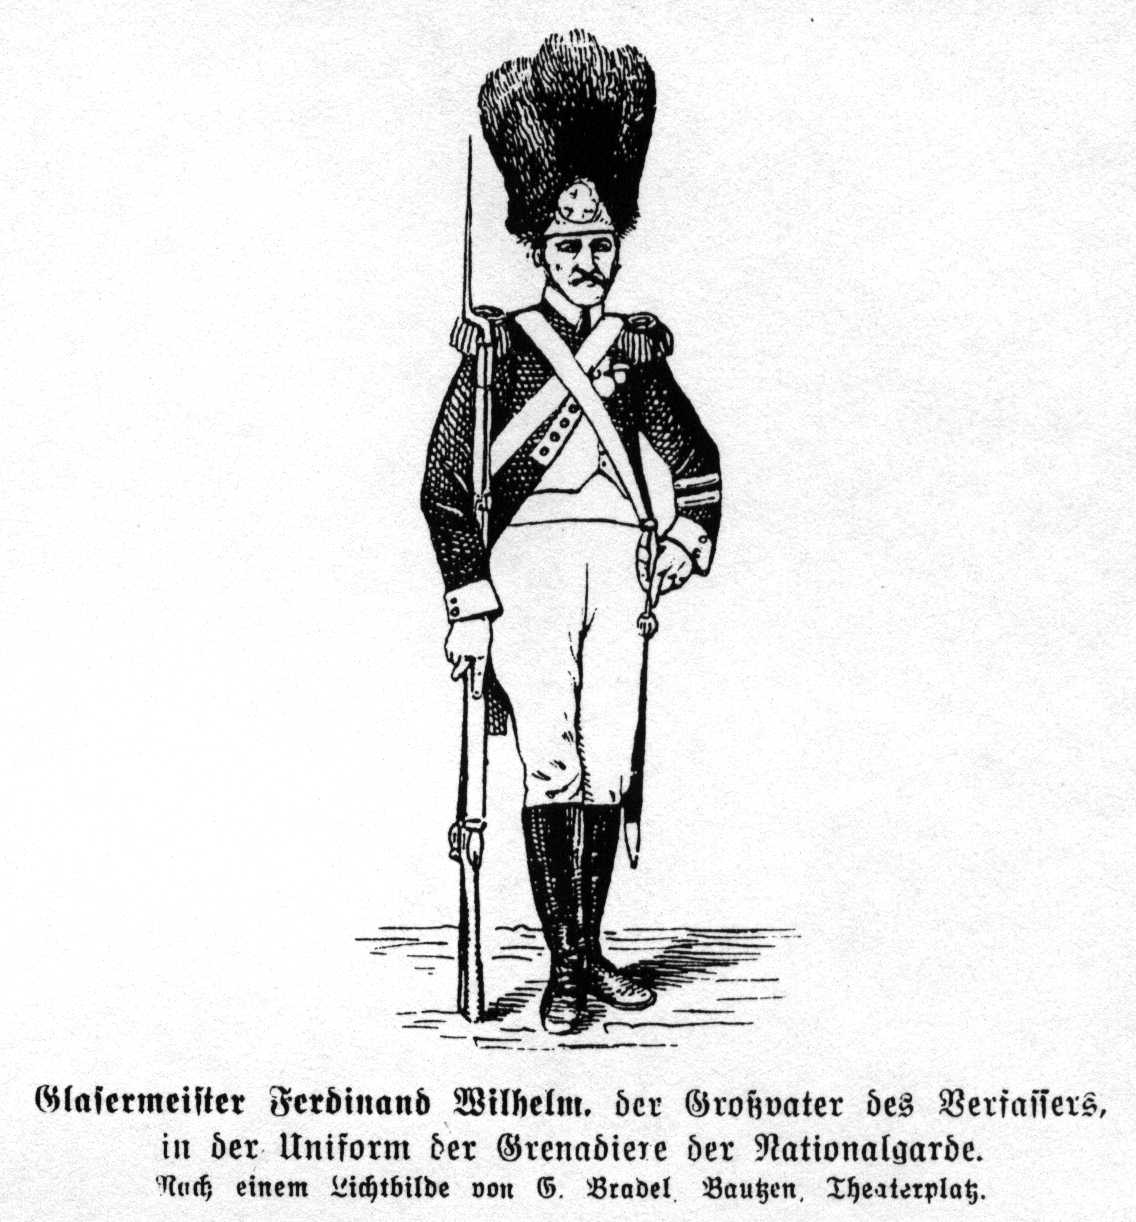 Grenadier der Nationalgarde